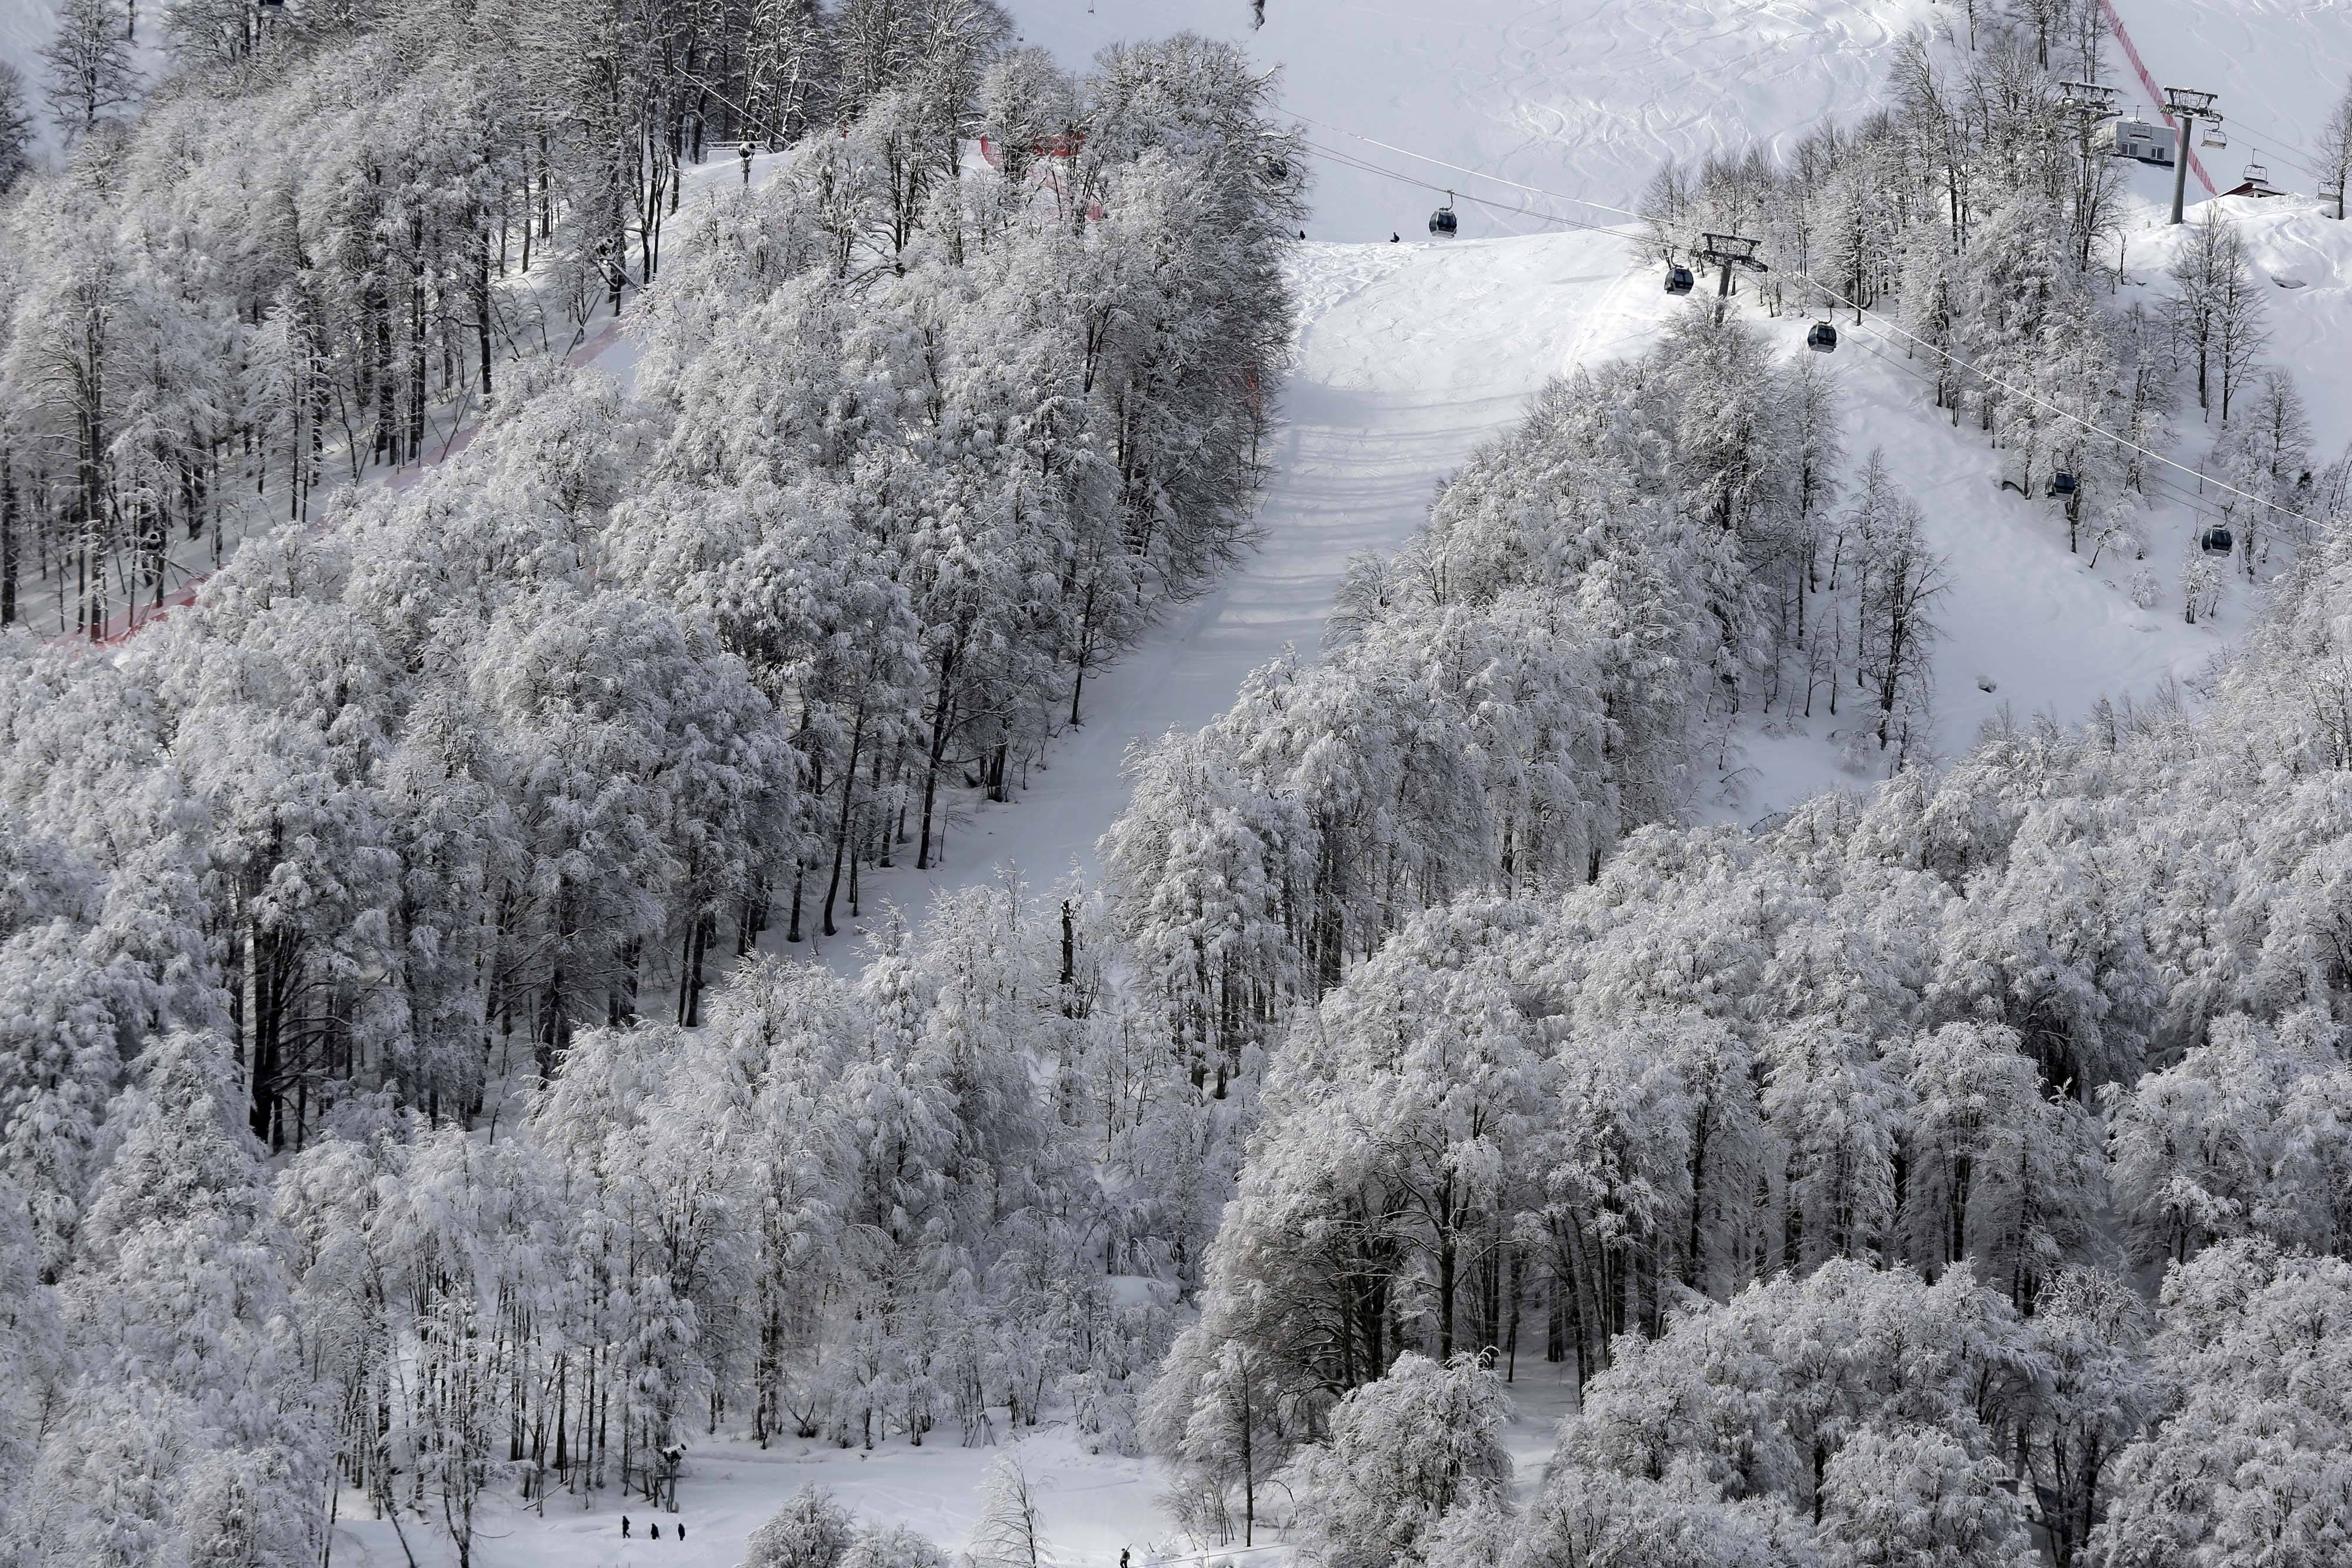 A gondola passes a stand of trees Wednesday after an overnight dusting of snow during snowboard parallel giant slalom qualifying at the Rosa Khutor Extreme Park during the 2014 Winter Olympics in Krasnaya Polyana, Russia.